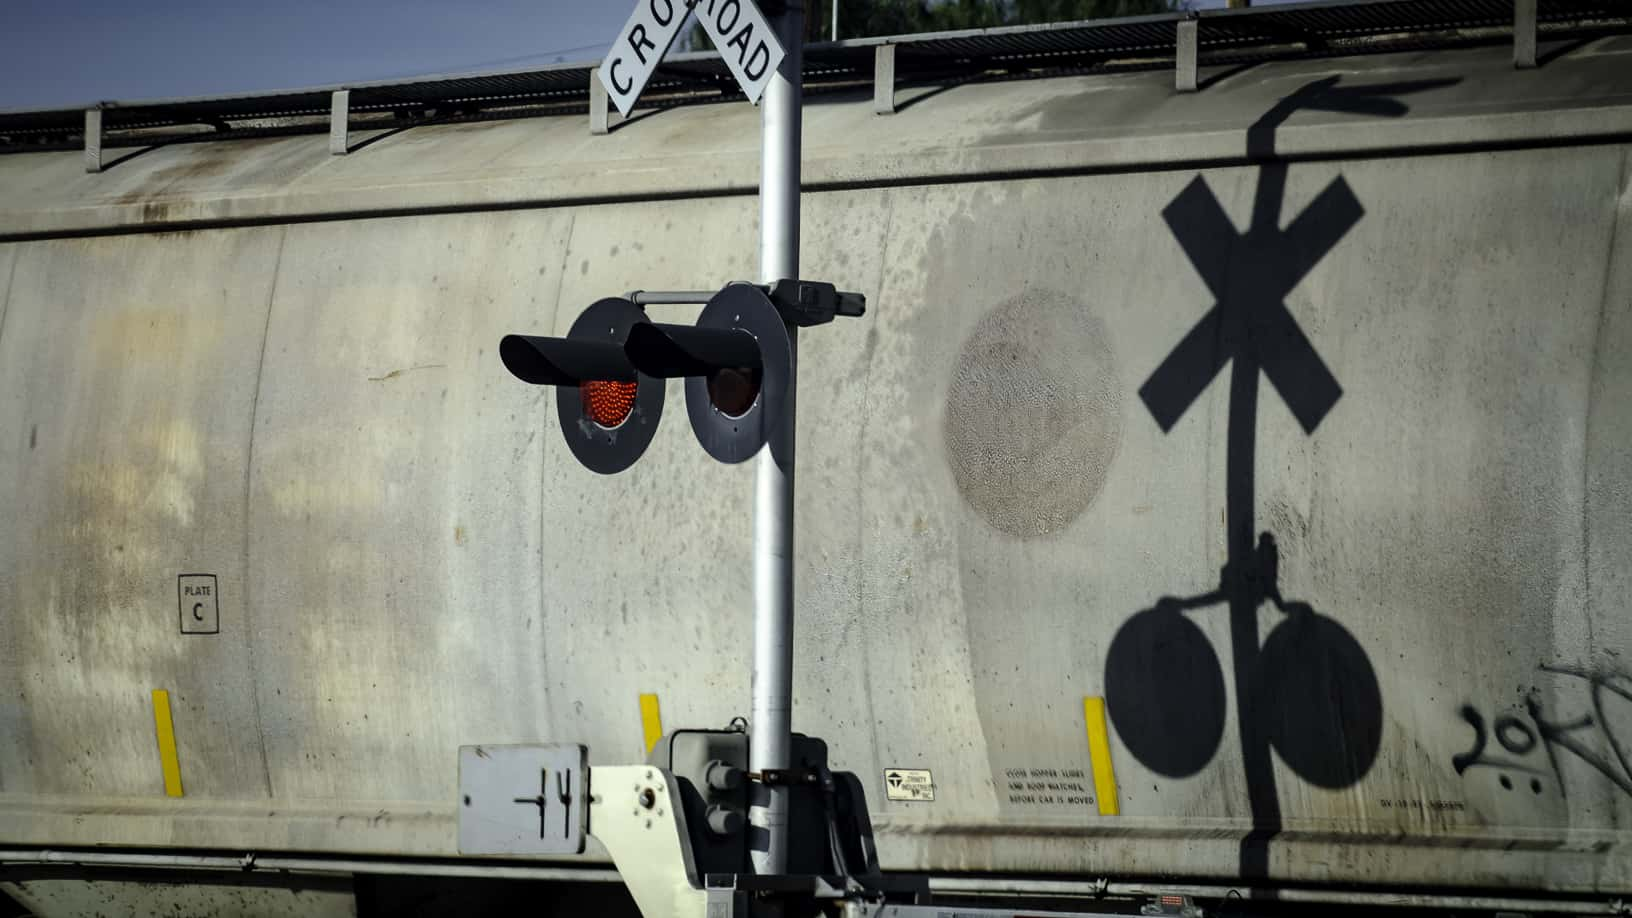 Union leaders criticize precision scheduled railroading - FreightWaves